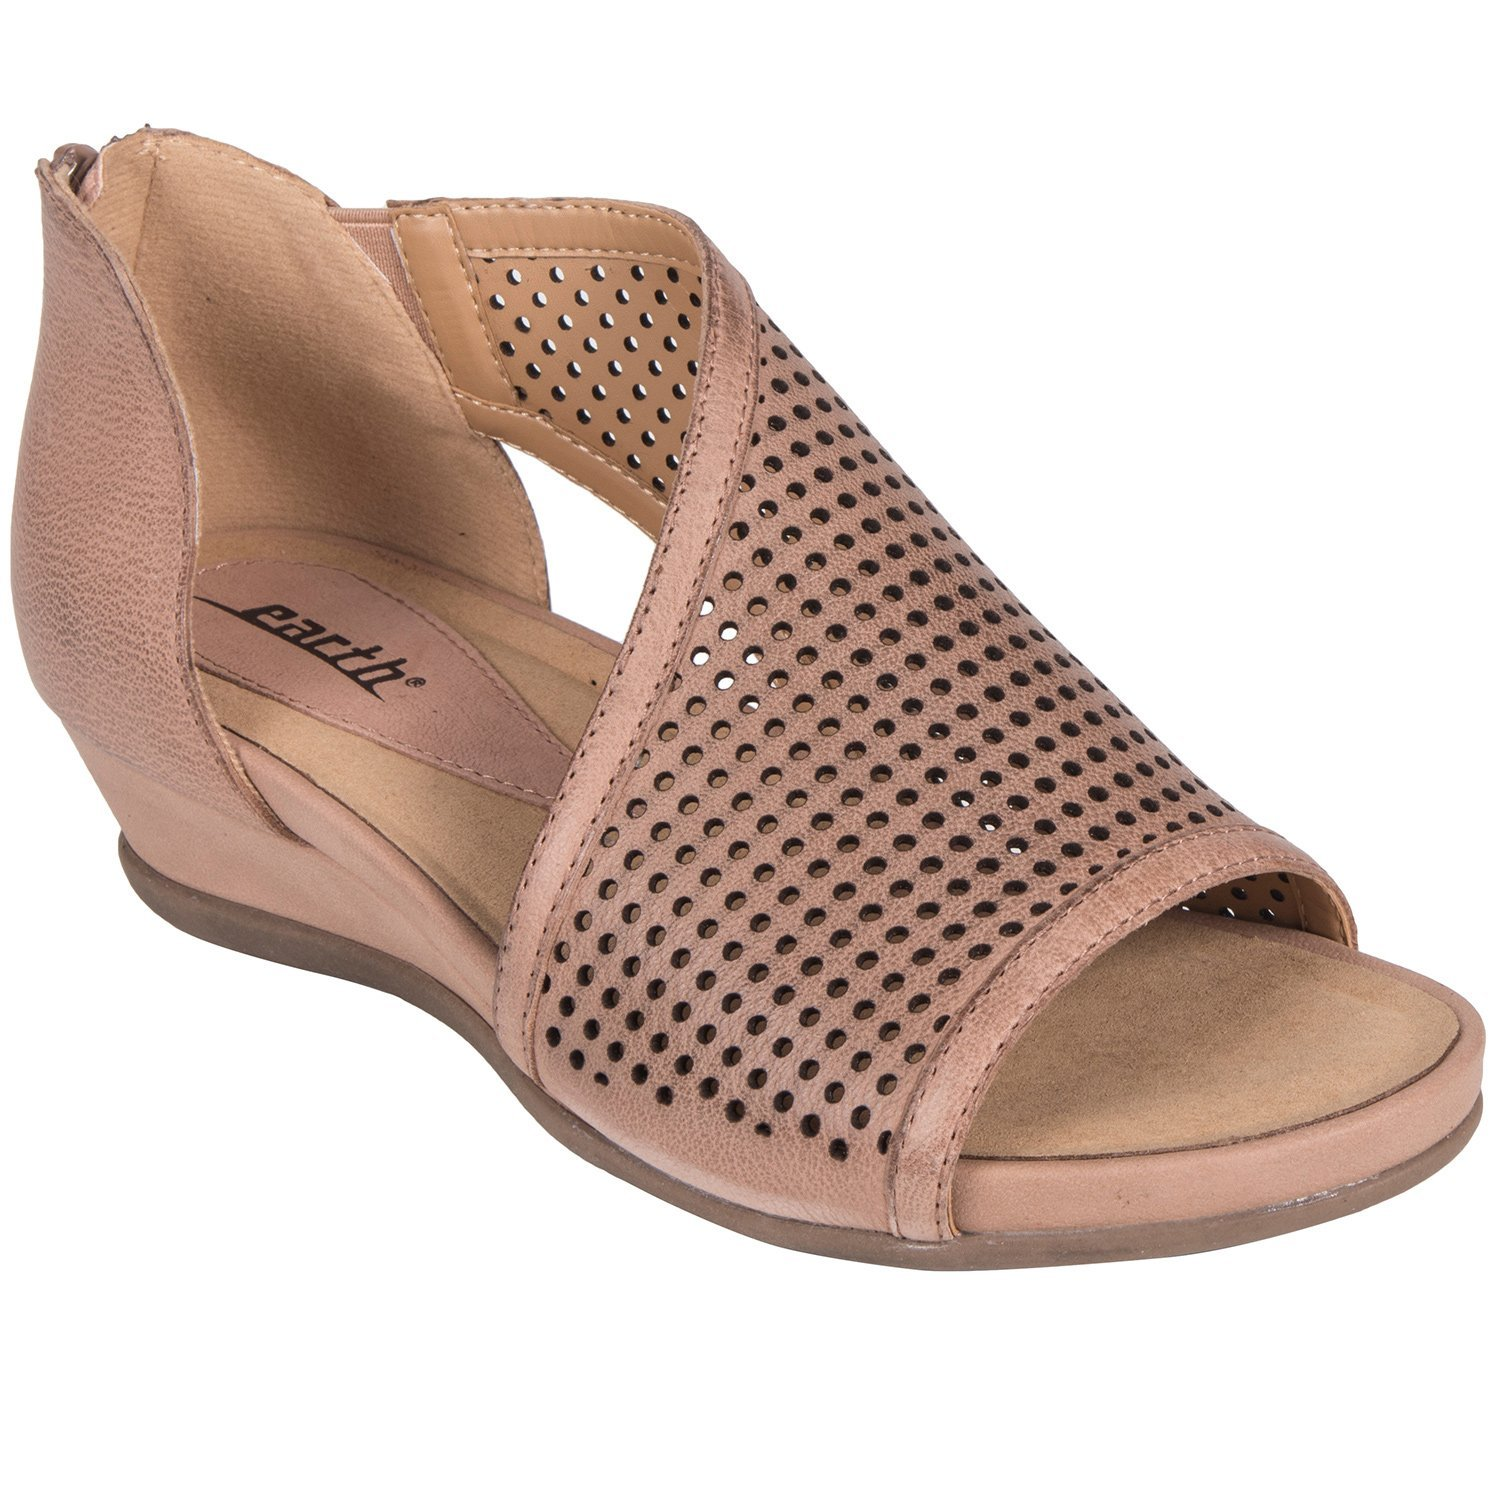 Earth Womens Venus Blush Sandal - 8 by Earth